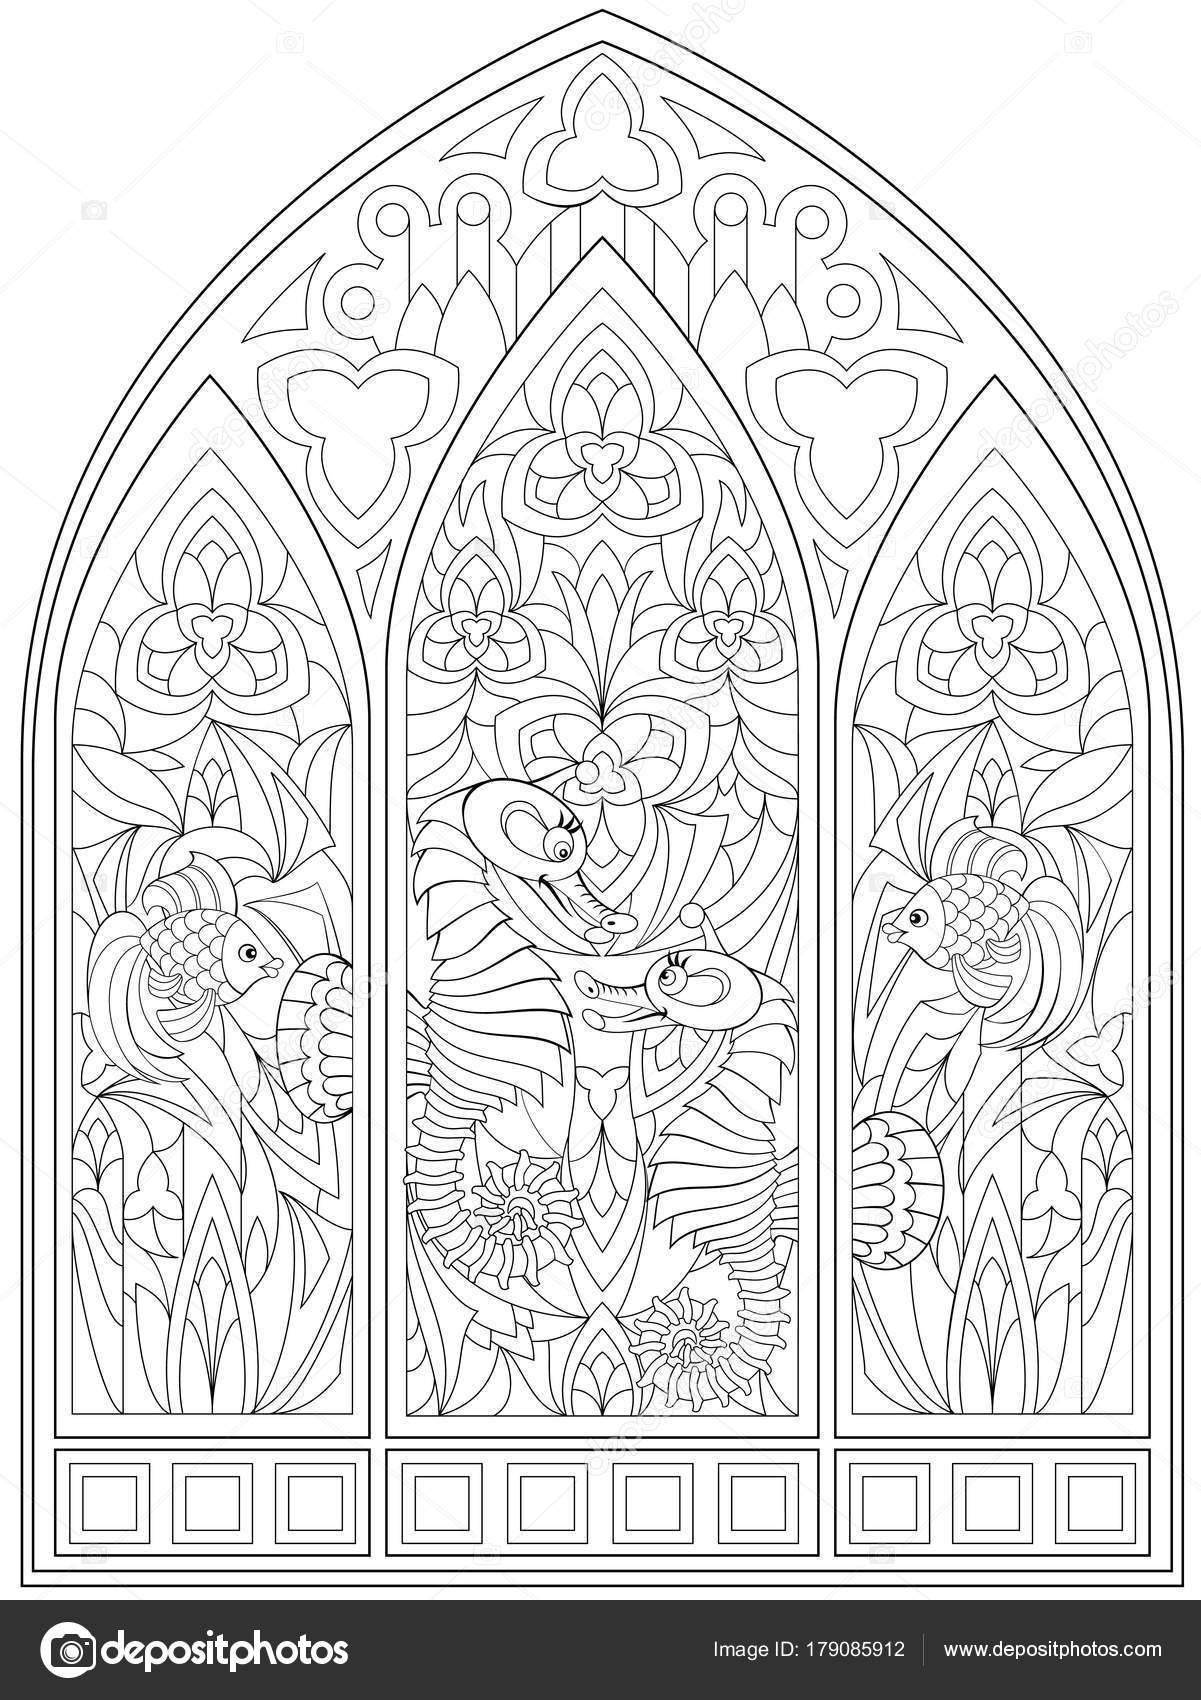 Fantasy Drawing Of Beautiful Gothic Windows With Stained Glass In Medieval Style Worksheet For Children And Adults Vector Image